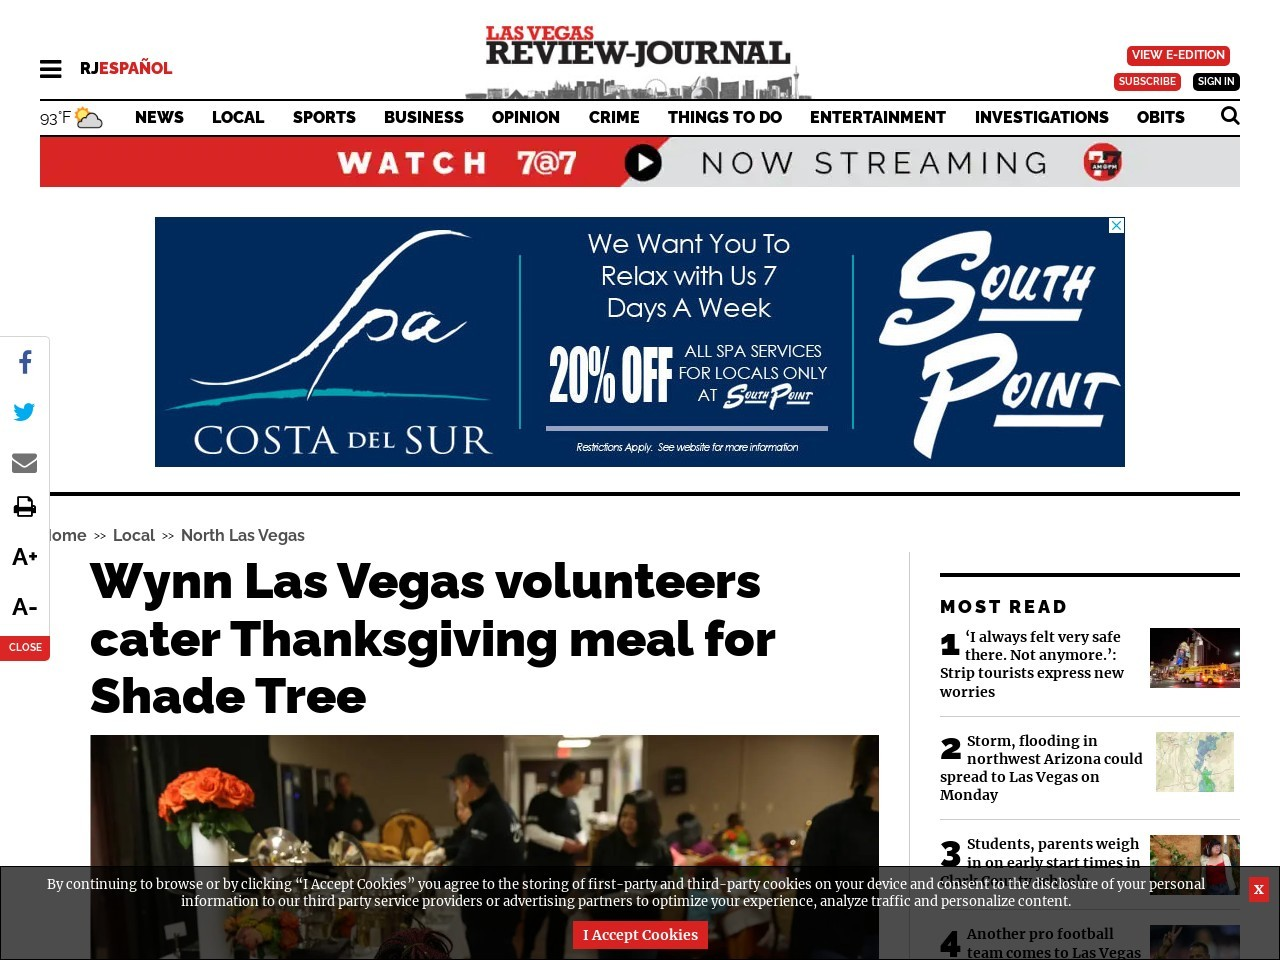 Wynn Las Vegas volunteers cater Thanksgiving meal for Shade Tree